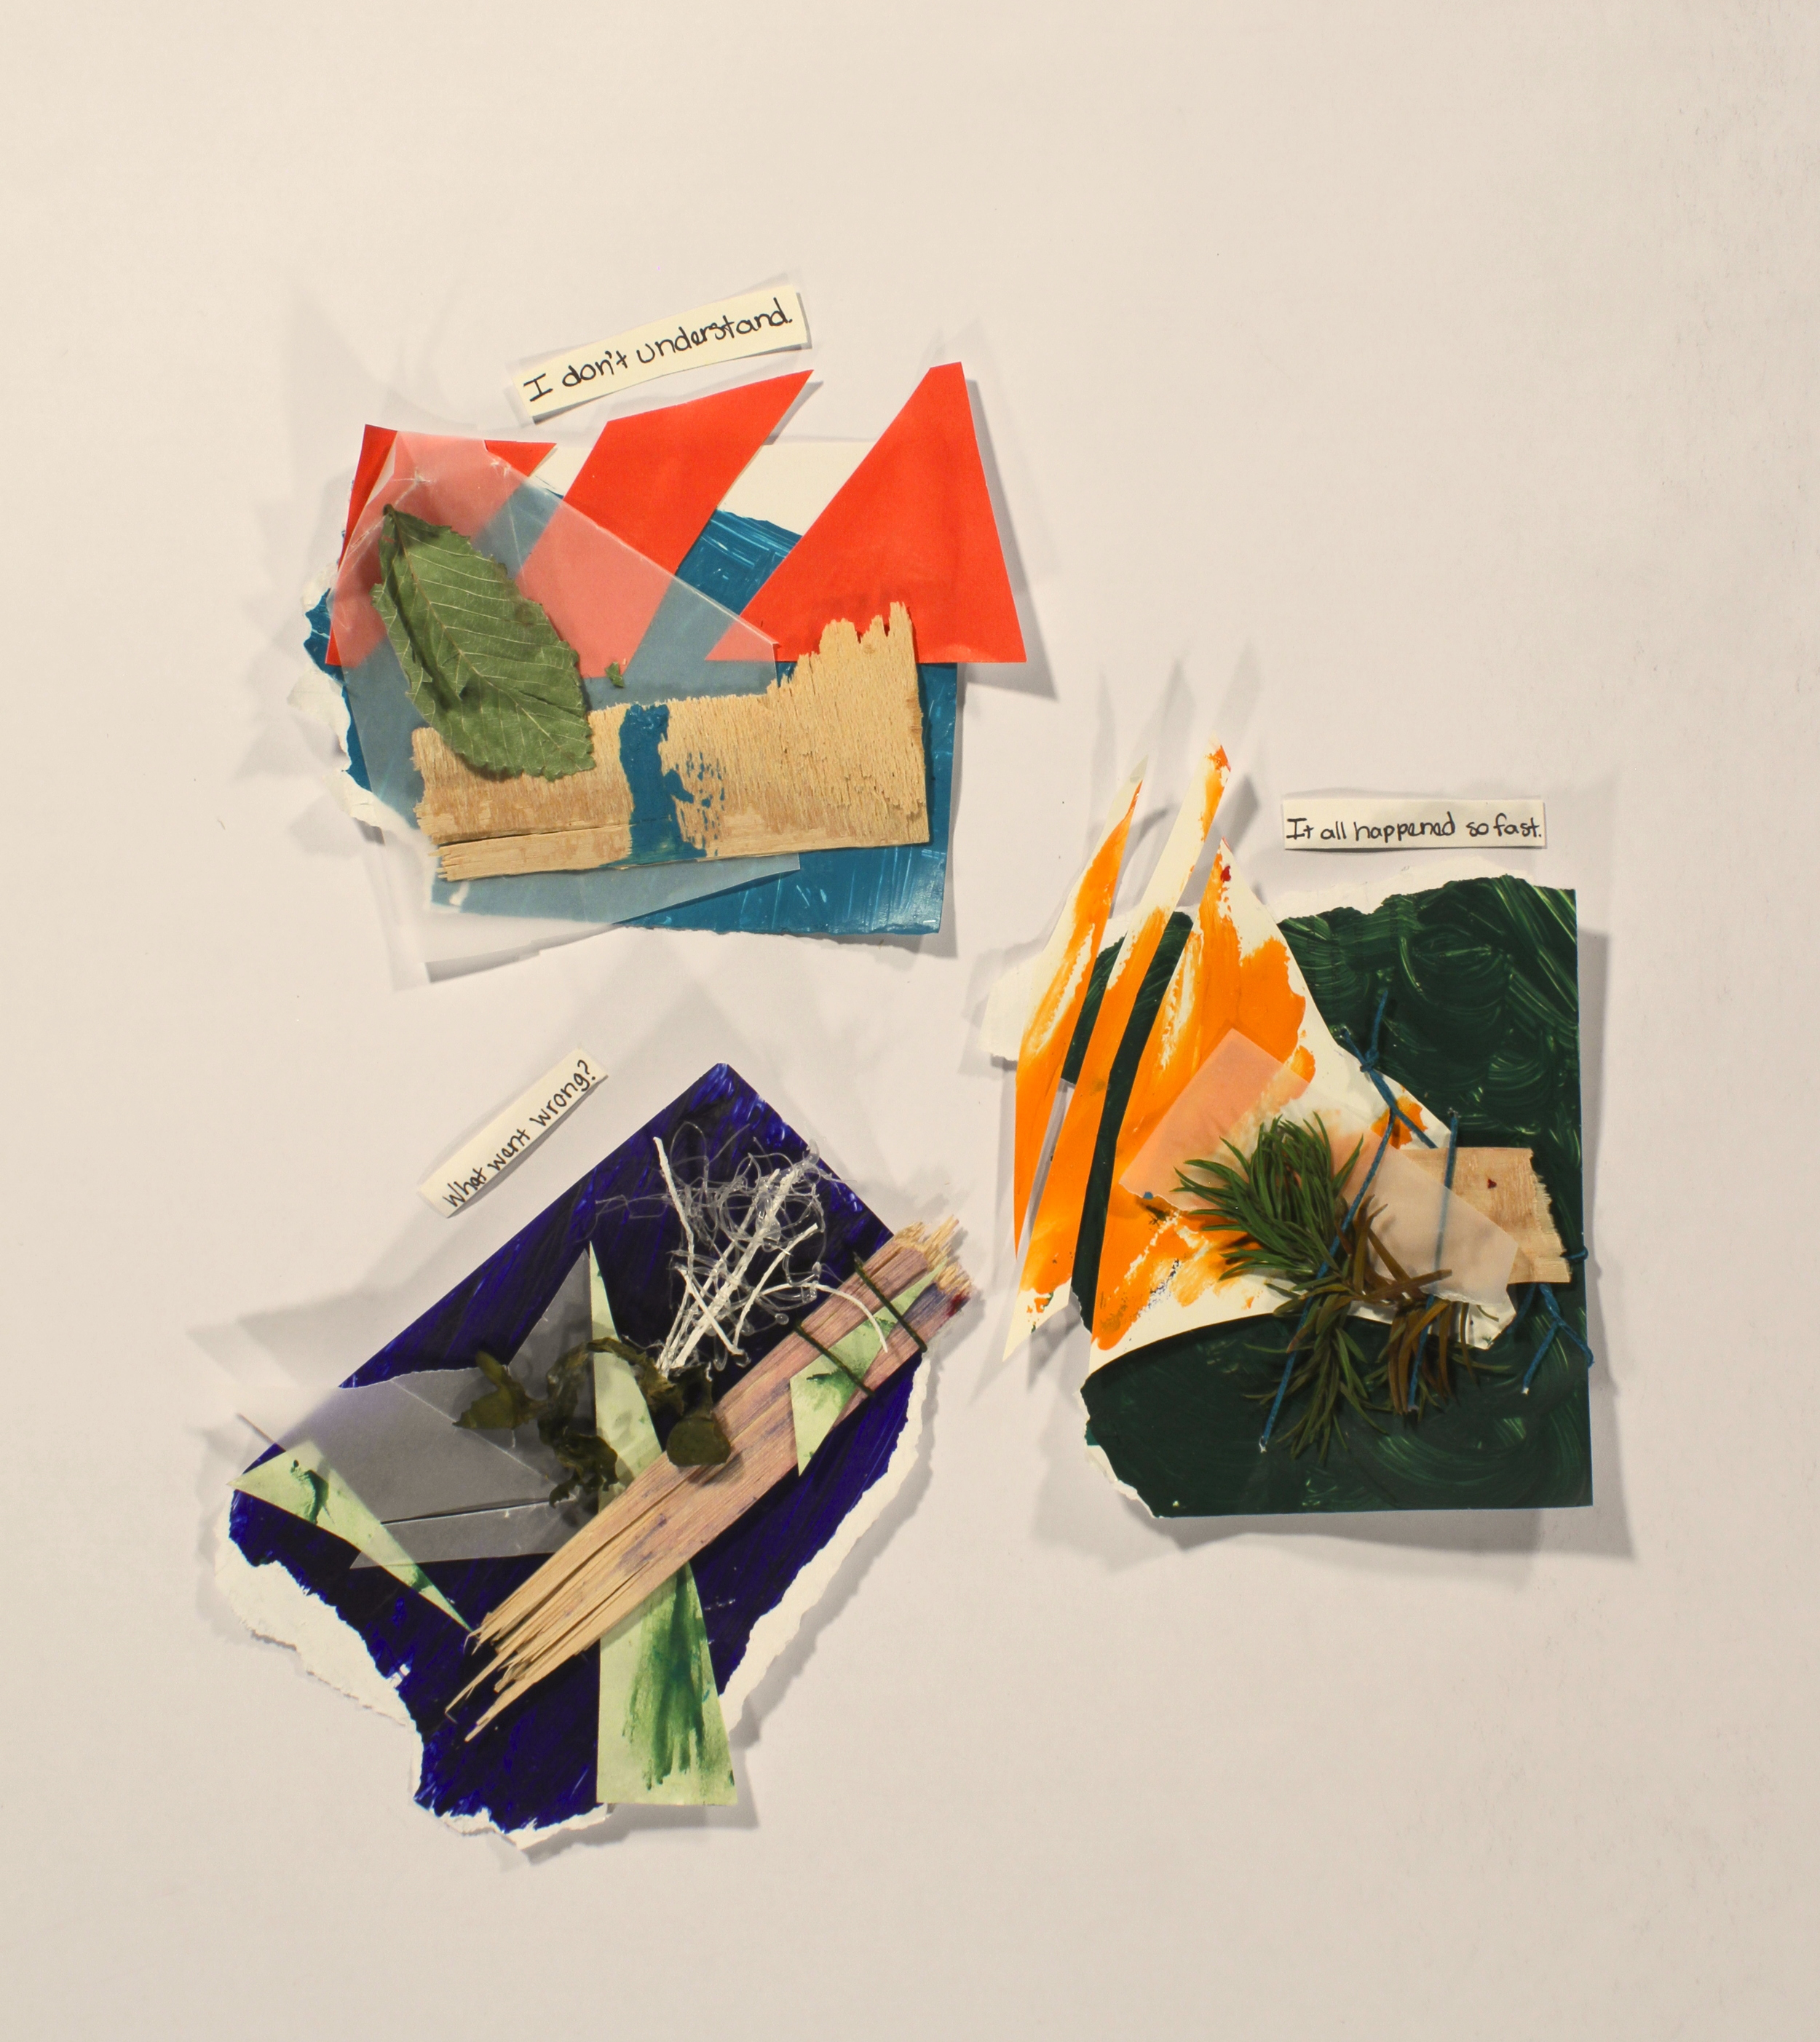 Missunderstandings- Confusion  2014, paper, vellum, acrylic, wood, marker, assorted plants, hot glue, twine, 12in x 11in